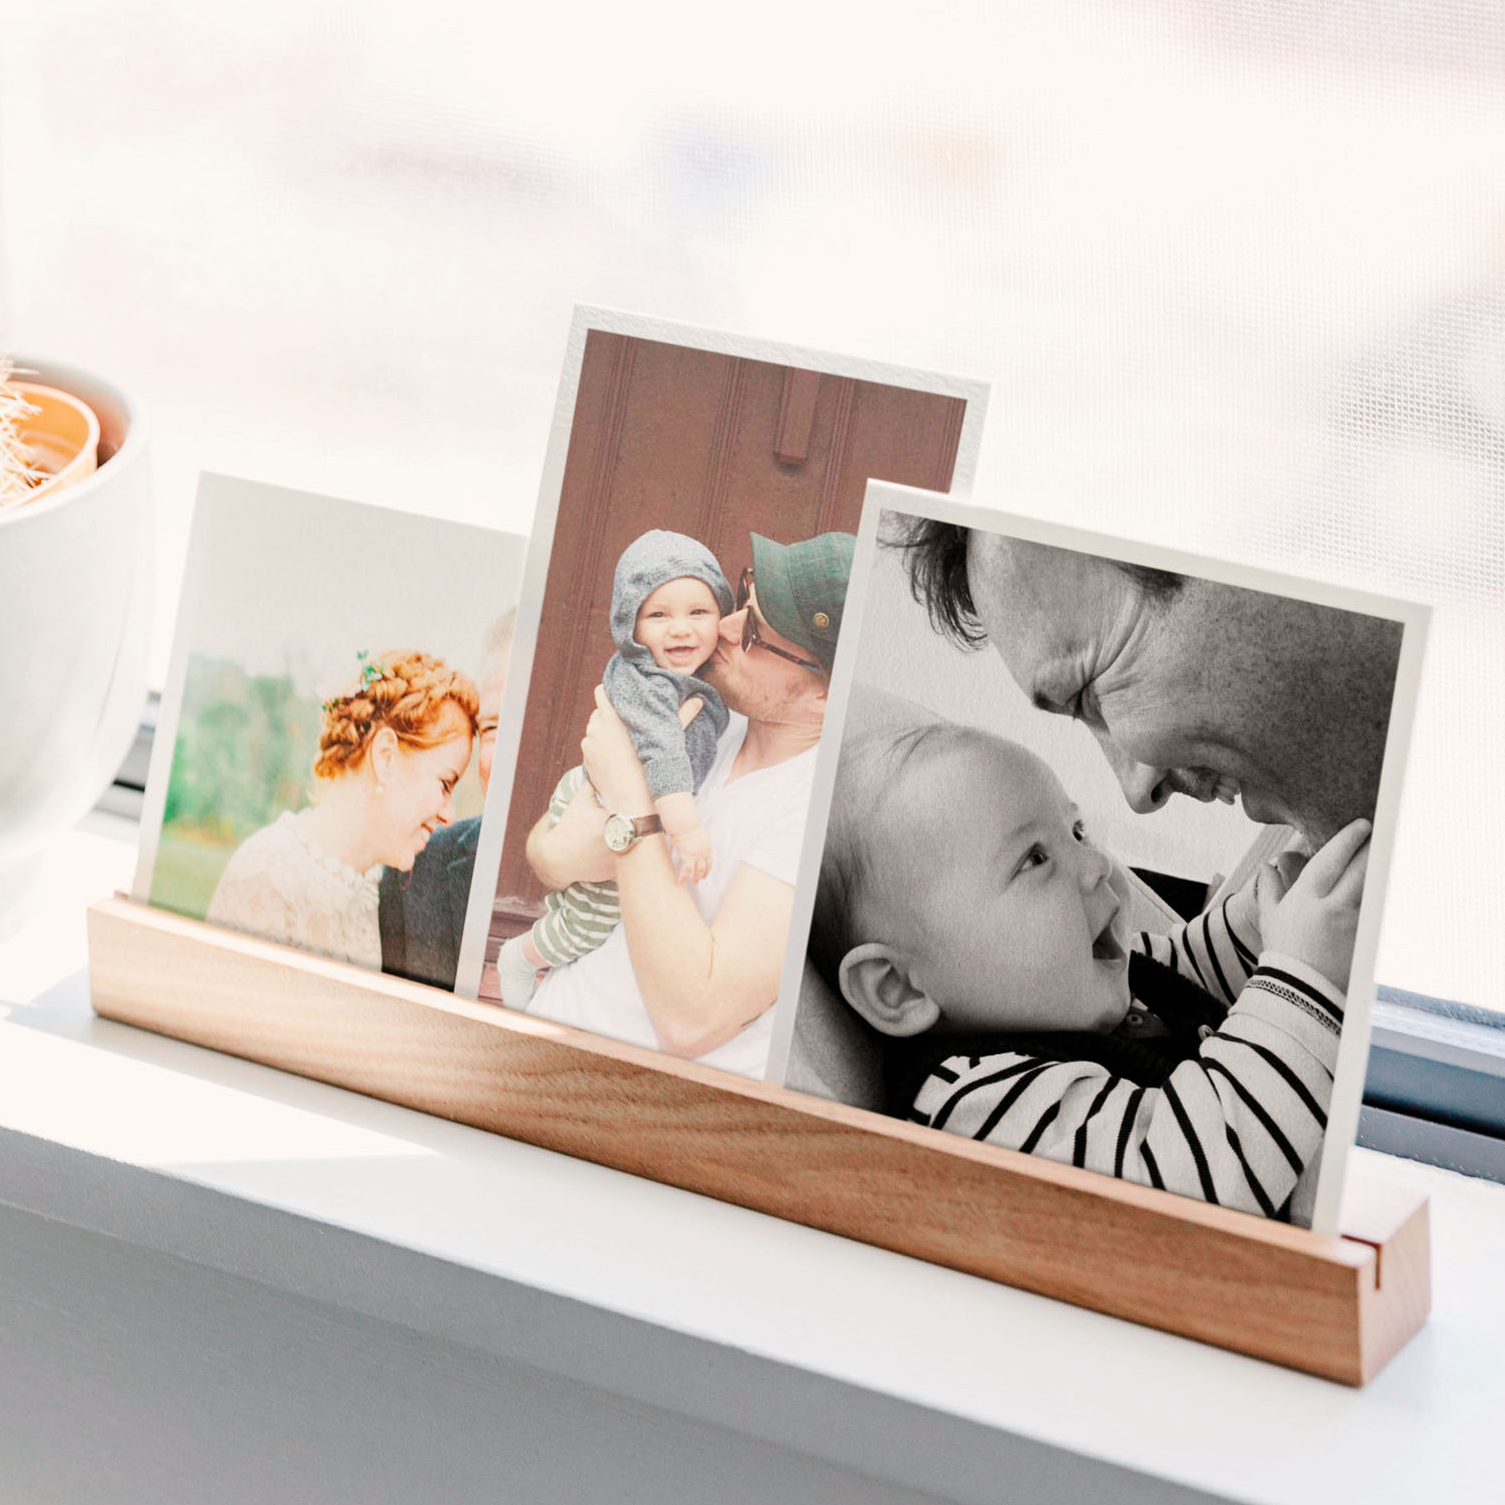 wooden photo ledge holding three family photos